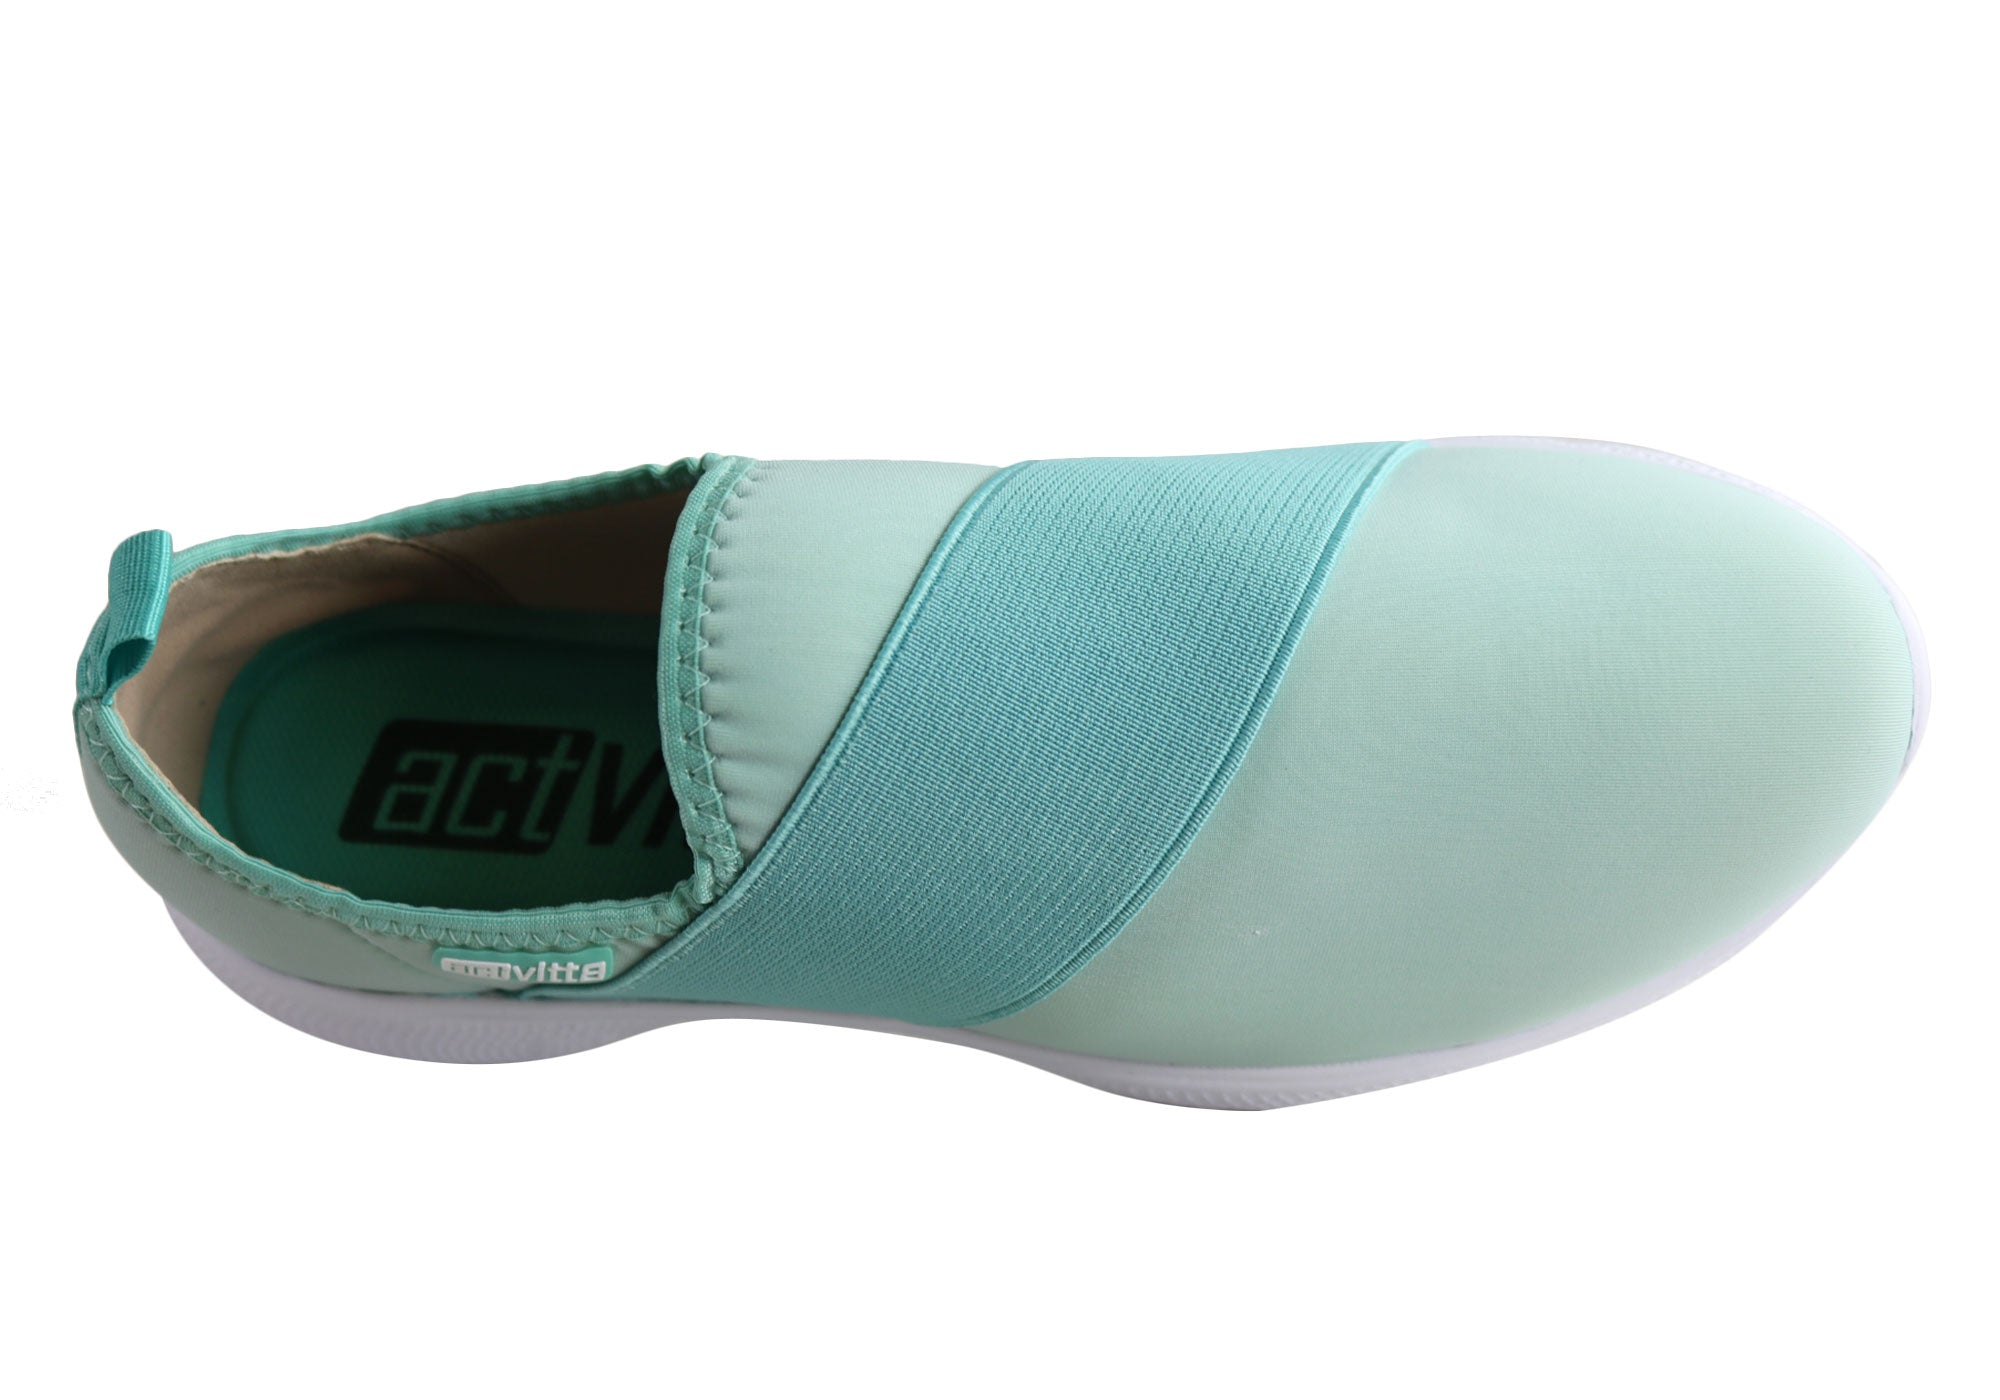 Actvitta Gemini Womens Comfort Cushioned Active Shoes Made In Brazil